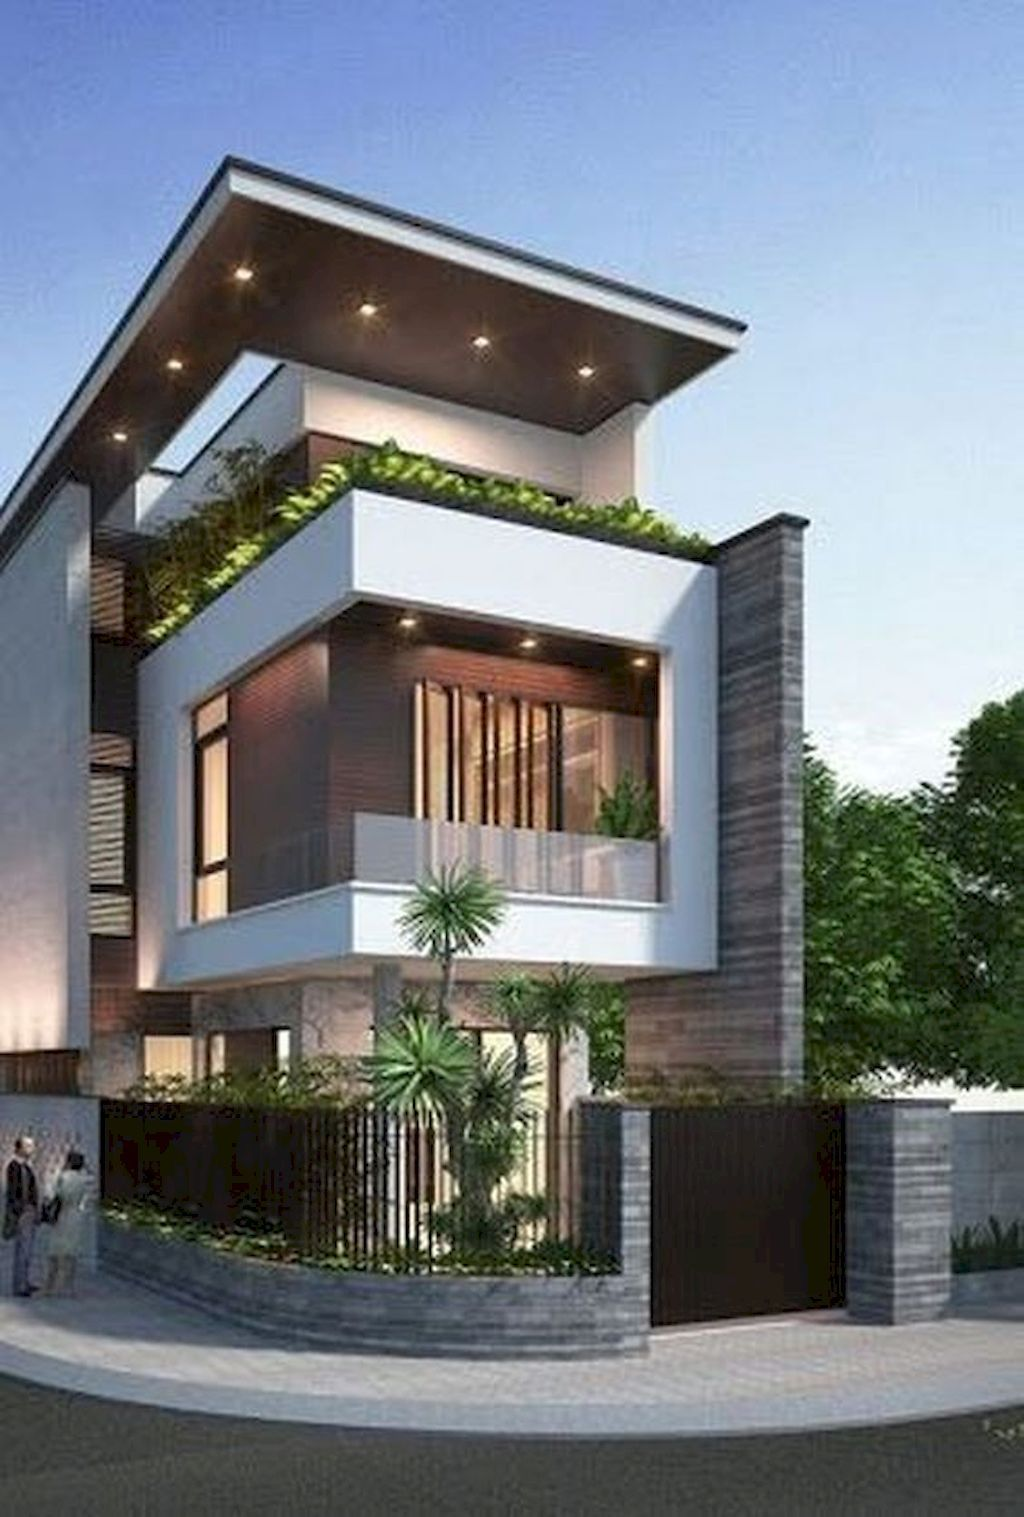 Guarantee You Have Access To The Best Contemporary Architecture Inspiration Access Our Blog At L Architecture House Modern House Plans Minimalist House Design